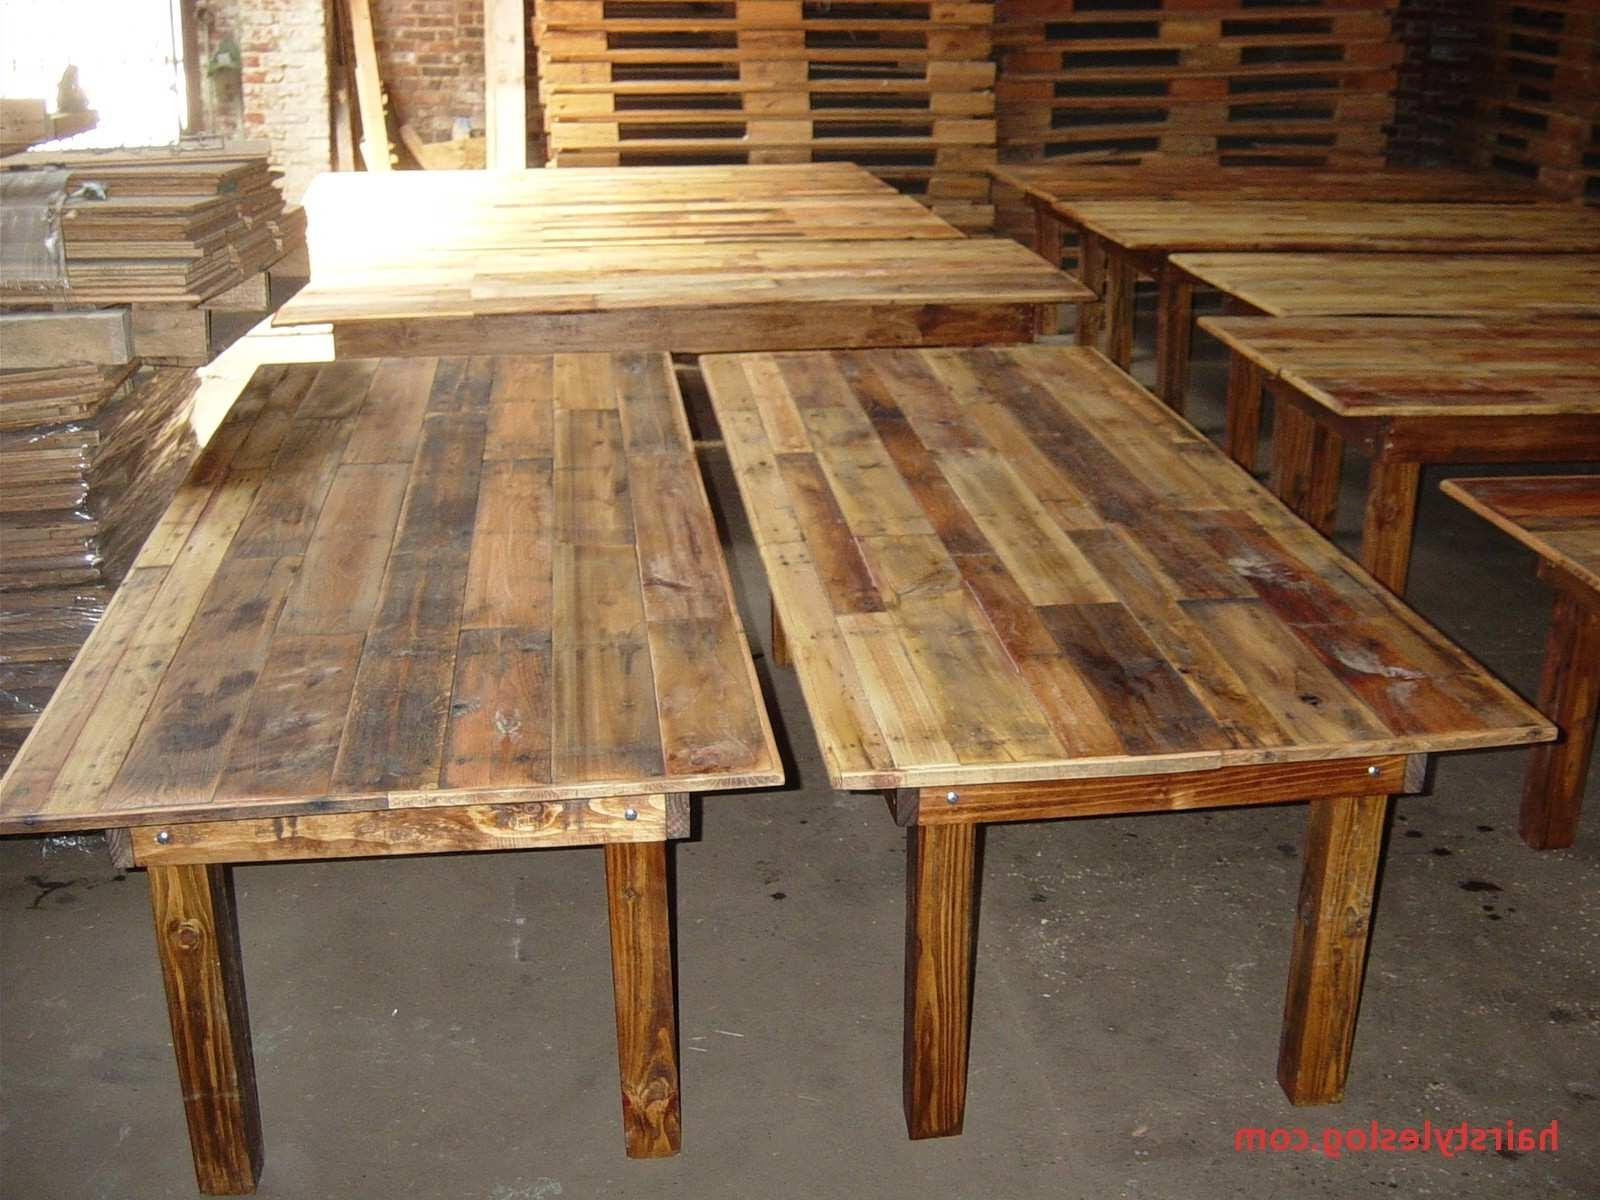 Unusual Dining Tables For Sale inside 2018 Neutral Rustic Round Kitchen Tables For Sale Regarding Aspiration